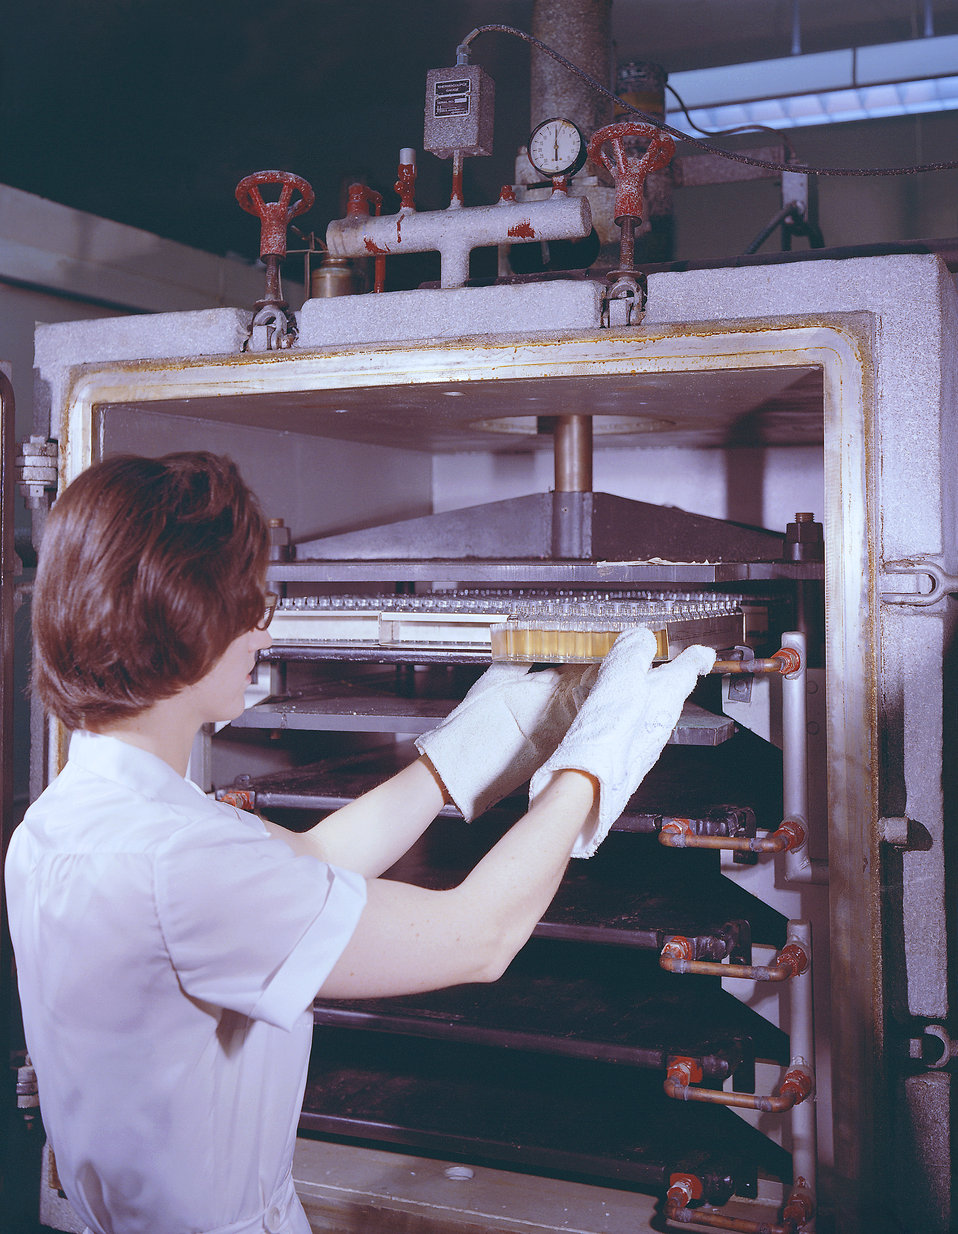 This historic 1963 photograph depicted laboratorian, Deanne Tolson, as she was preparing vials containing an unknown reagent, for lyophiliza